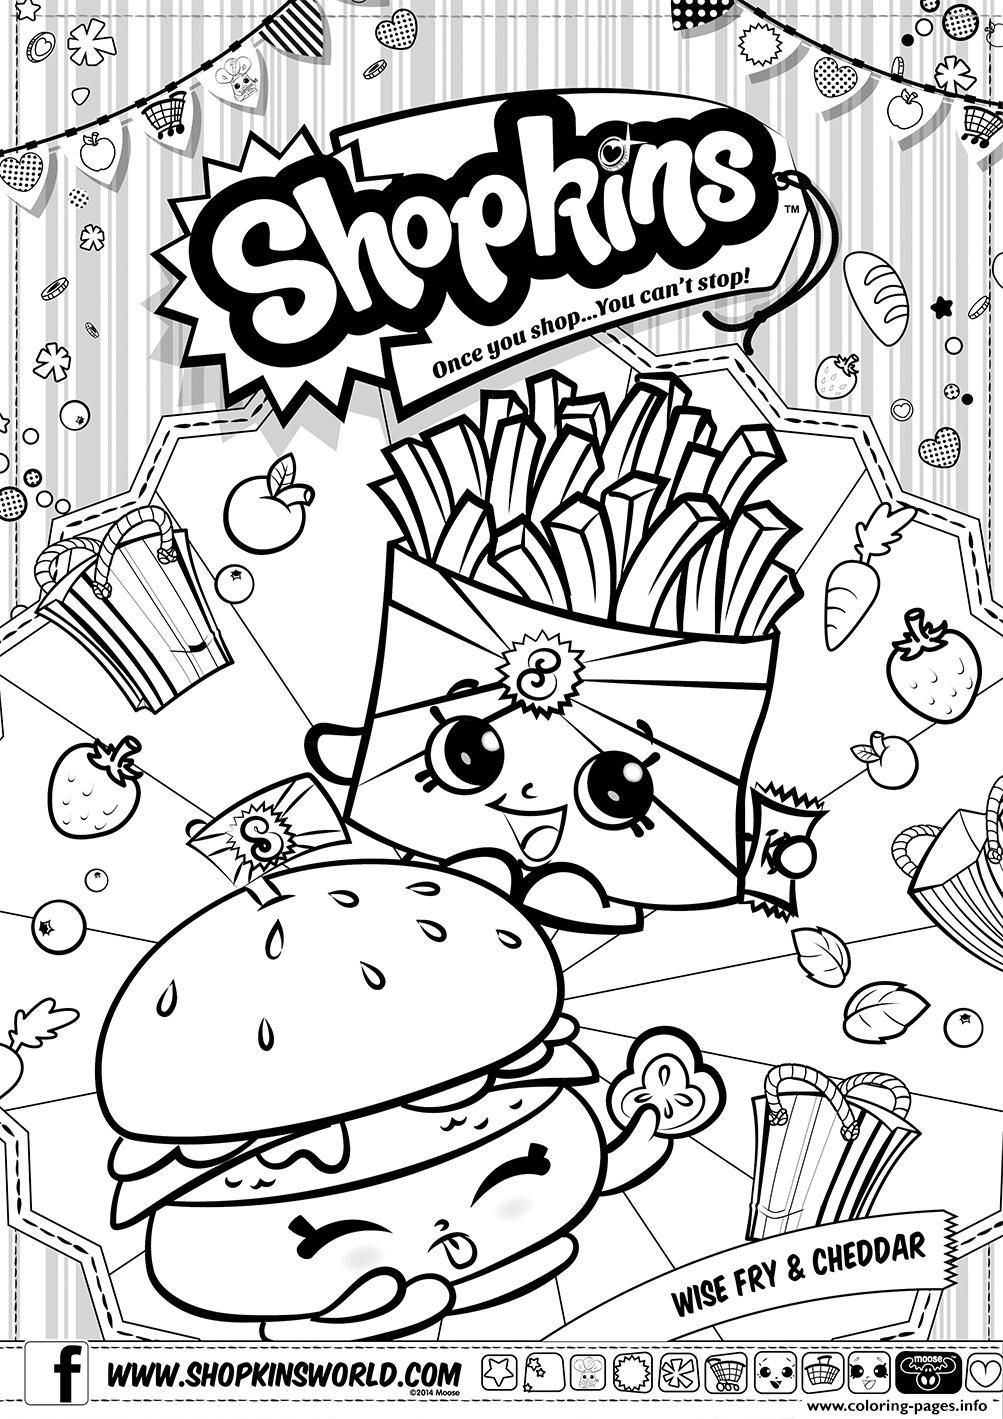 Shopkins Wise Fry Cheddar Coloring Pages Printable And Book To Print For Free Find More Online Kids Adults Of